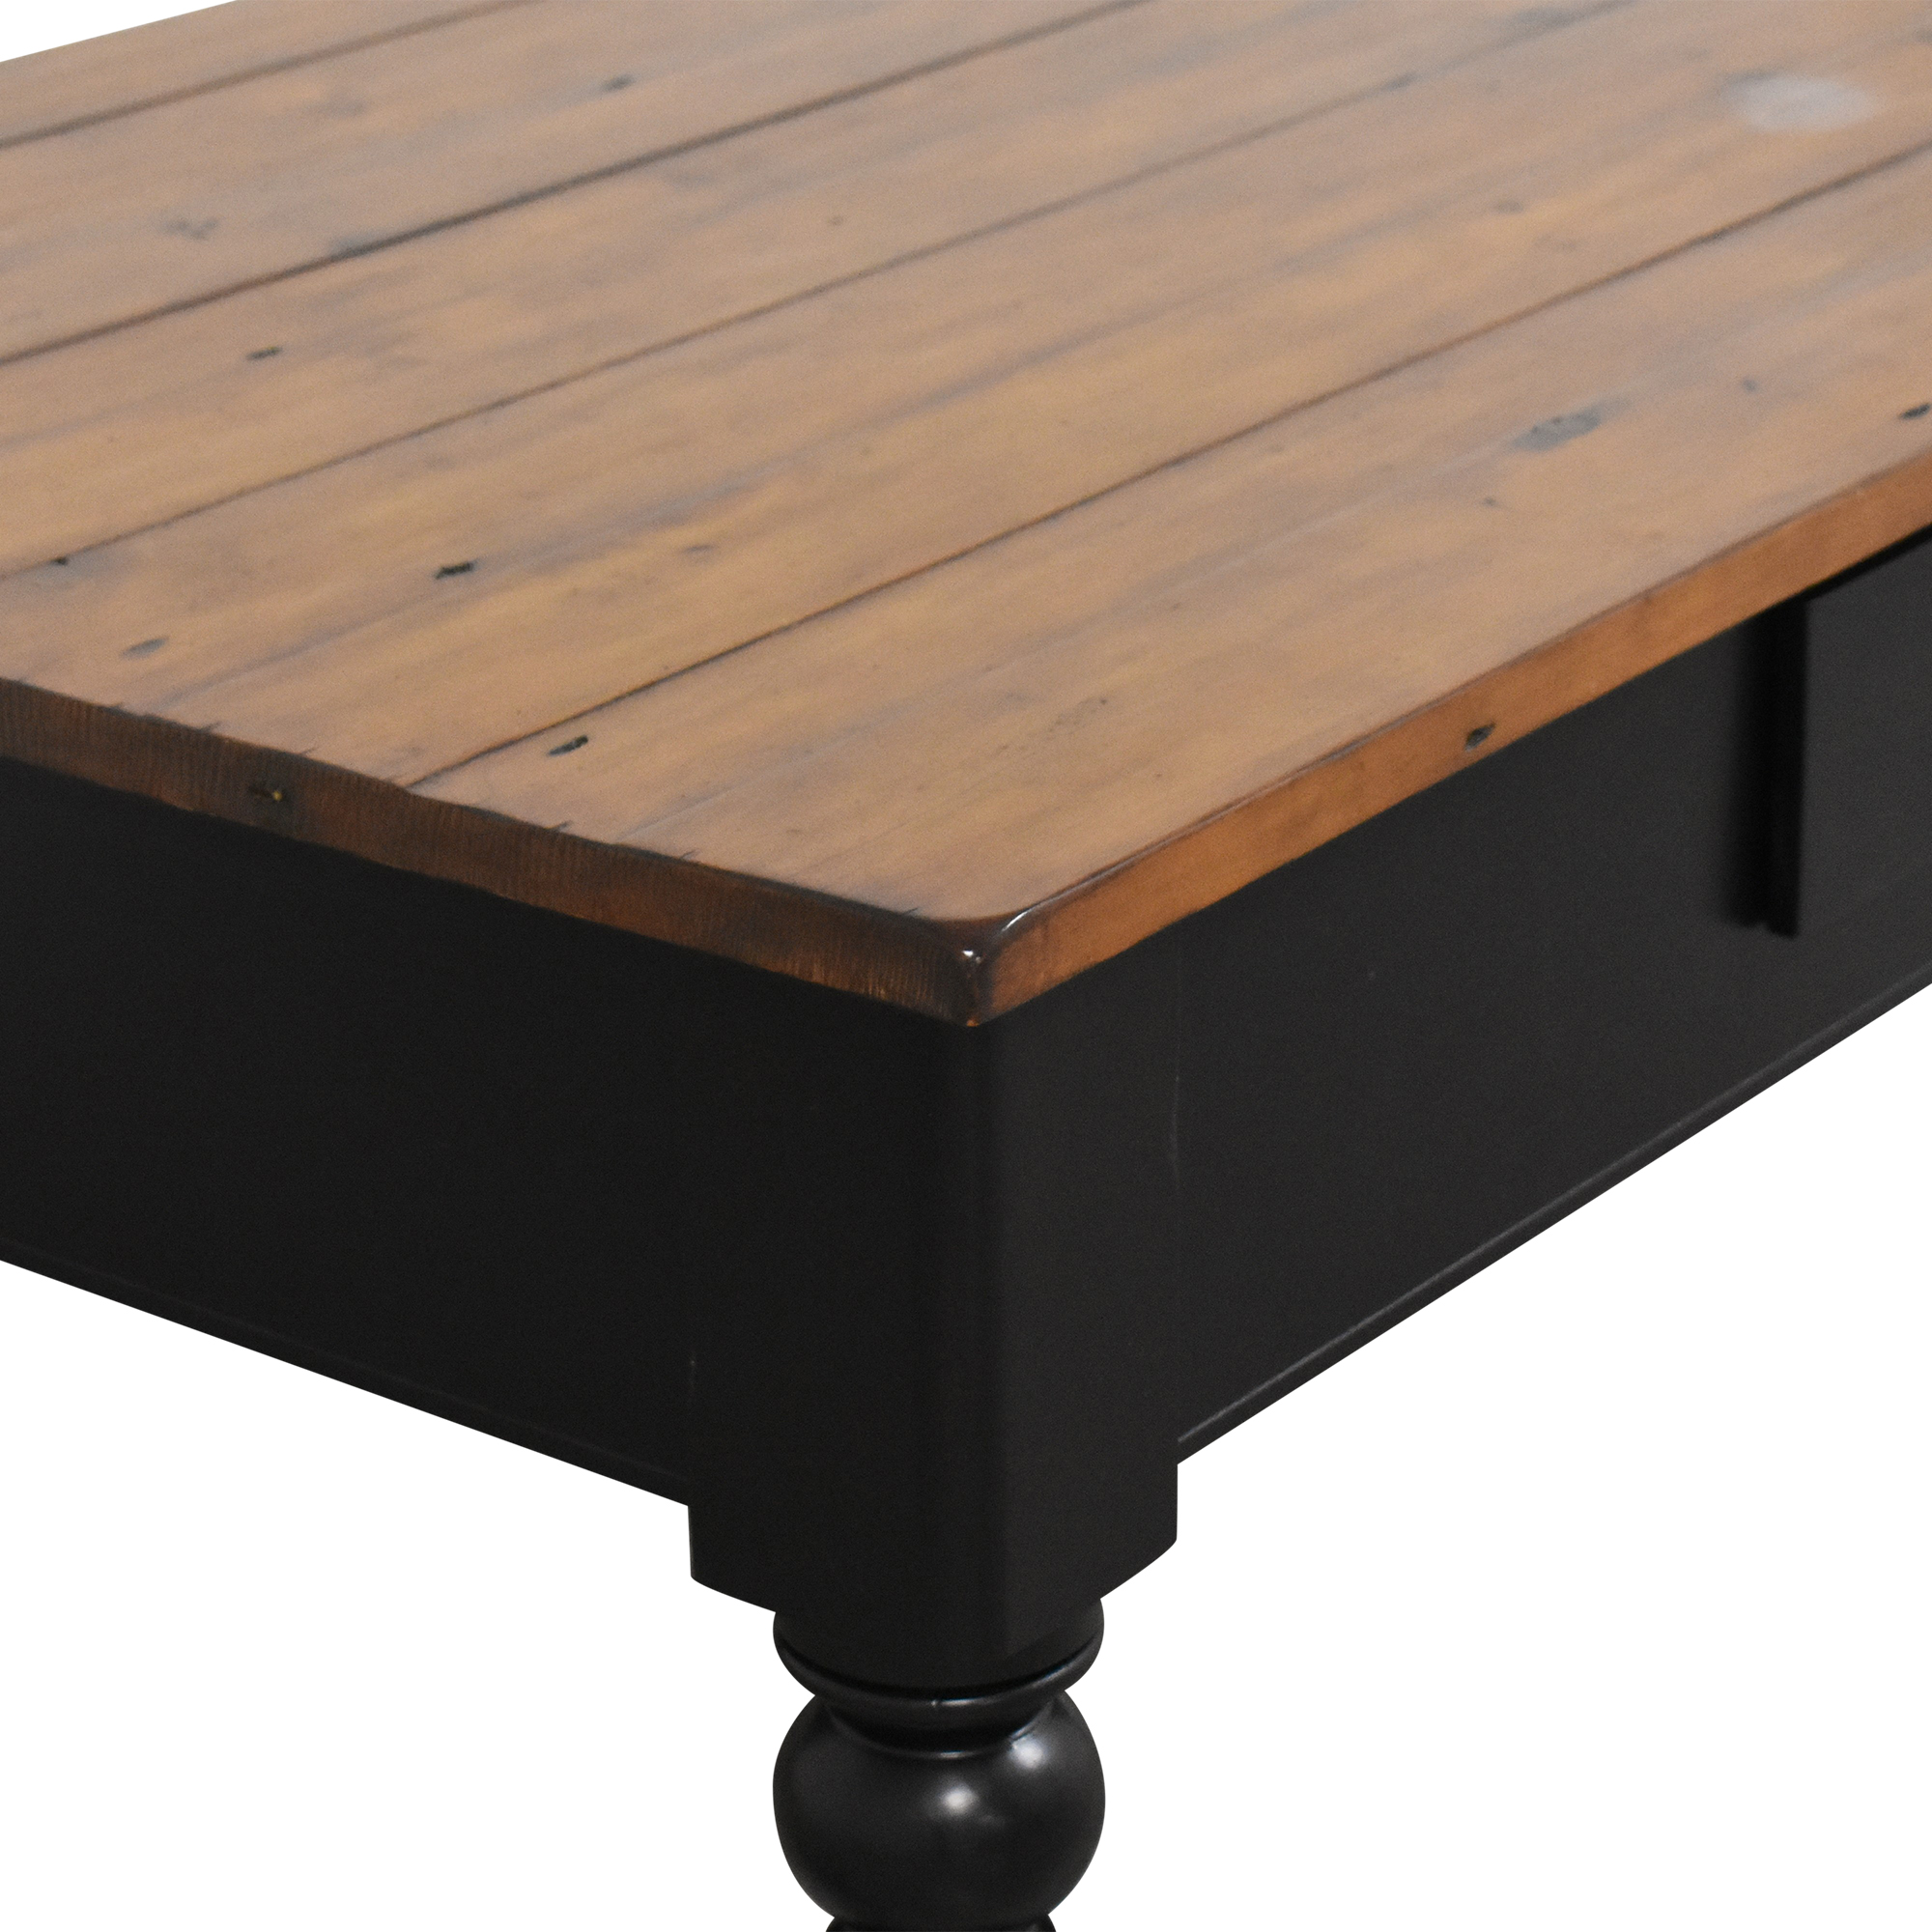 Pottery Barn Pottery Barn Coffee Table with Drawer  ma